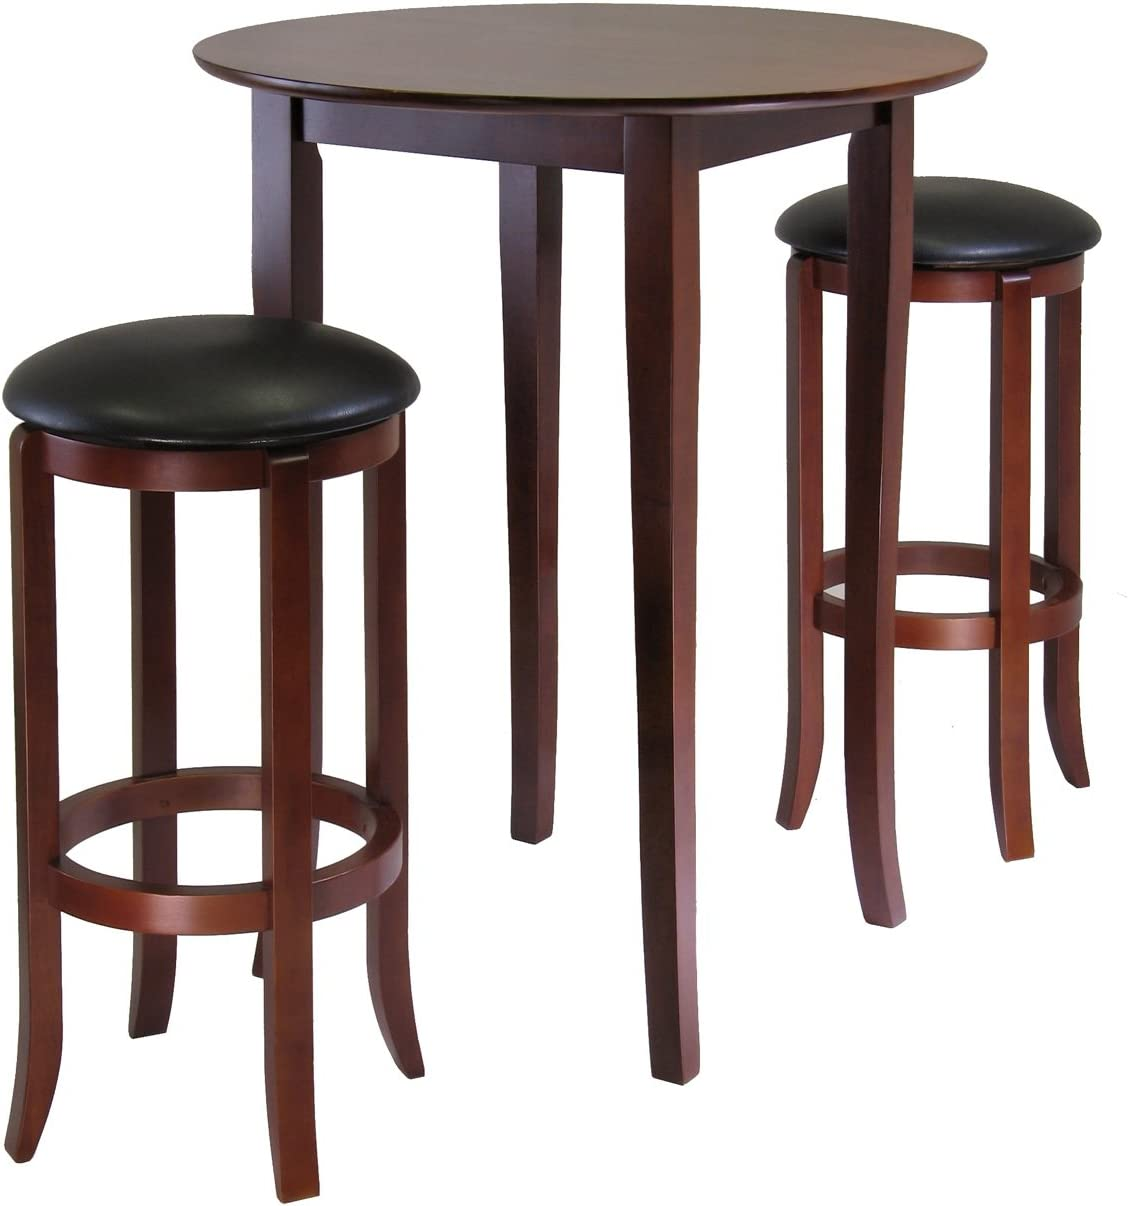 Winsome Fiona 3-Piece Round High Pub Table Set in Antique Walnut Finish